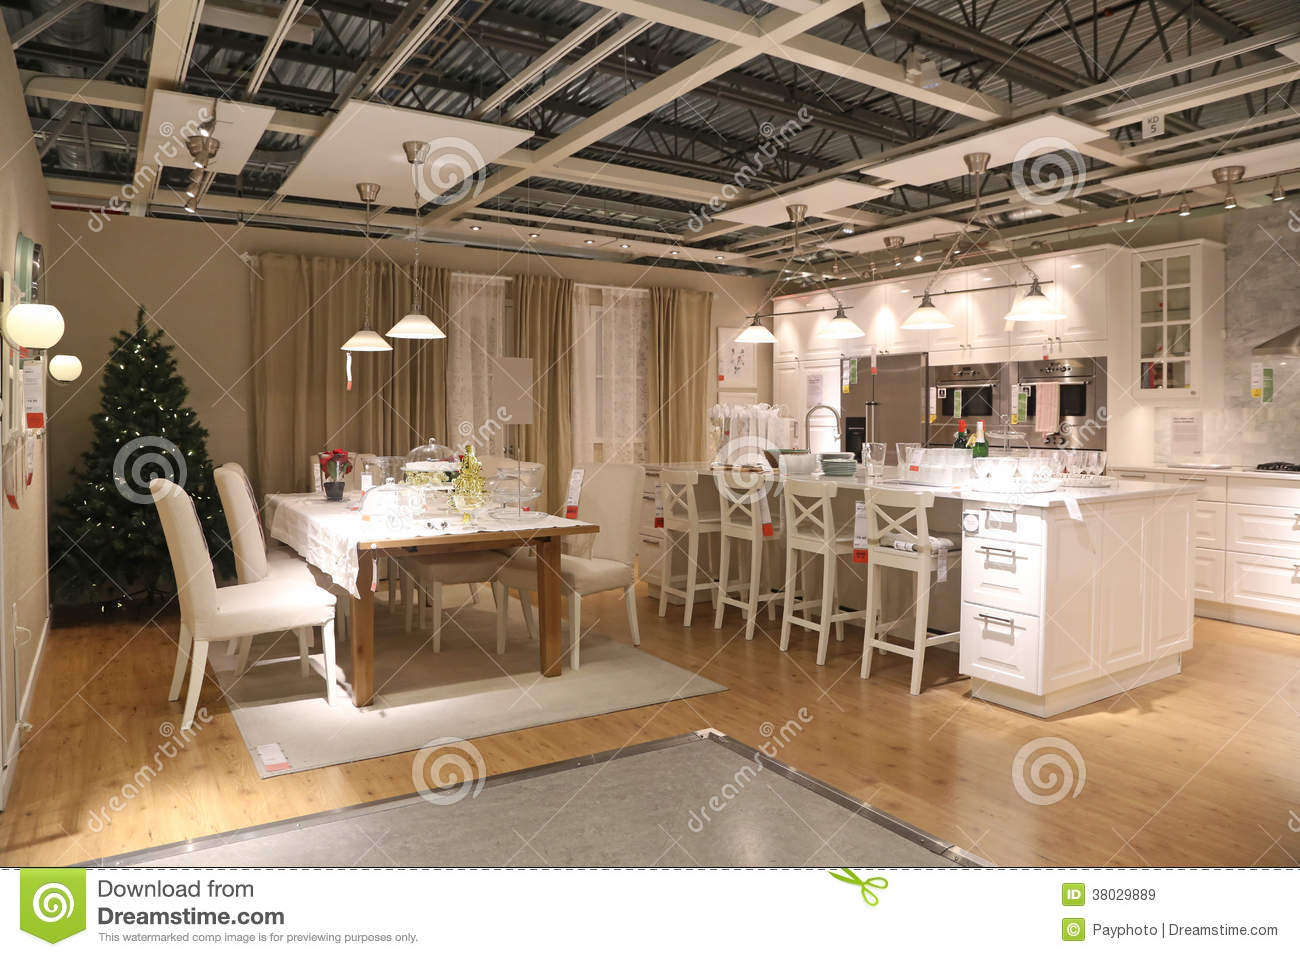 Display Furniture Set Of IKEA Coquitlam Store Royalty Free Stock Images